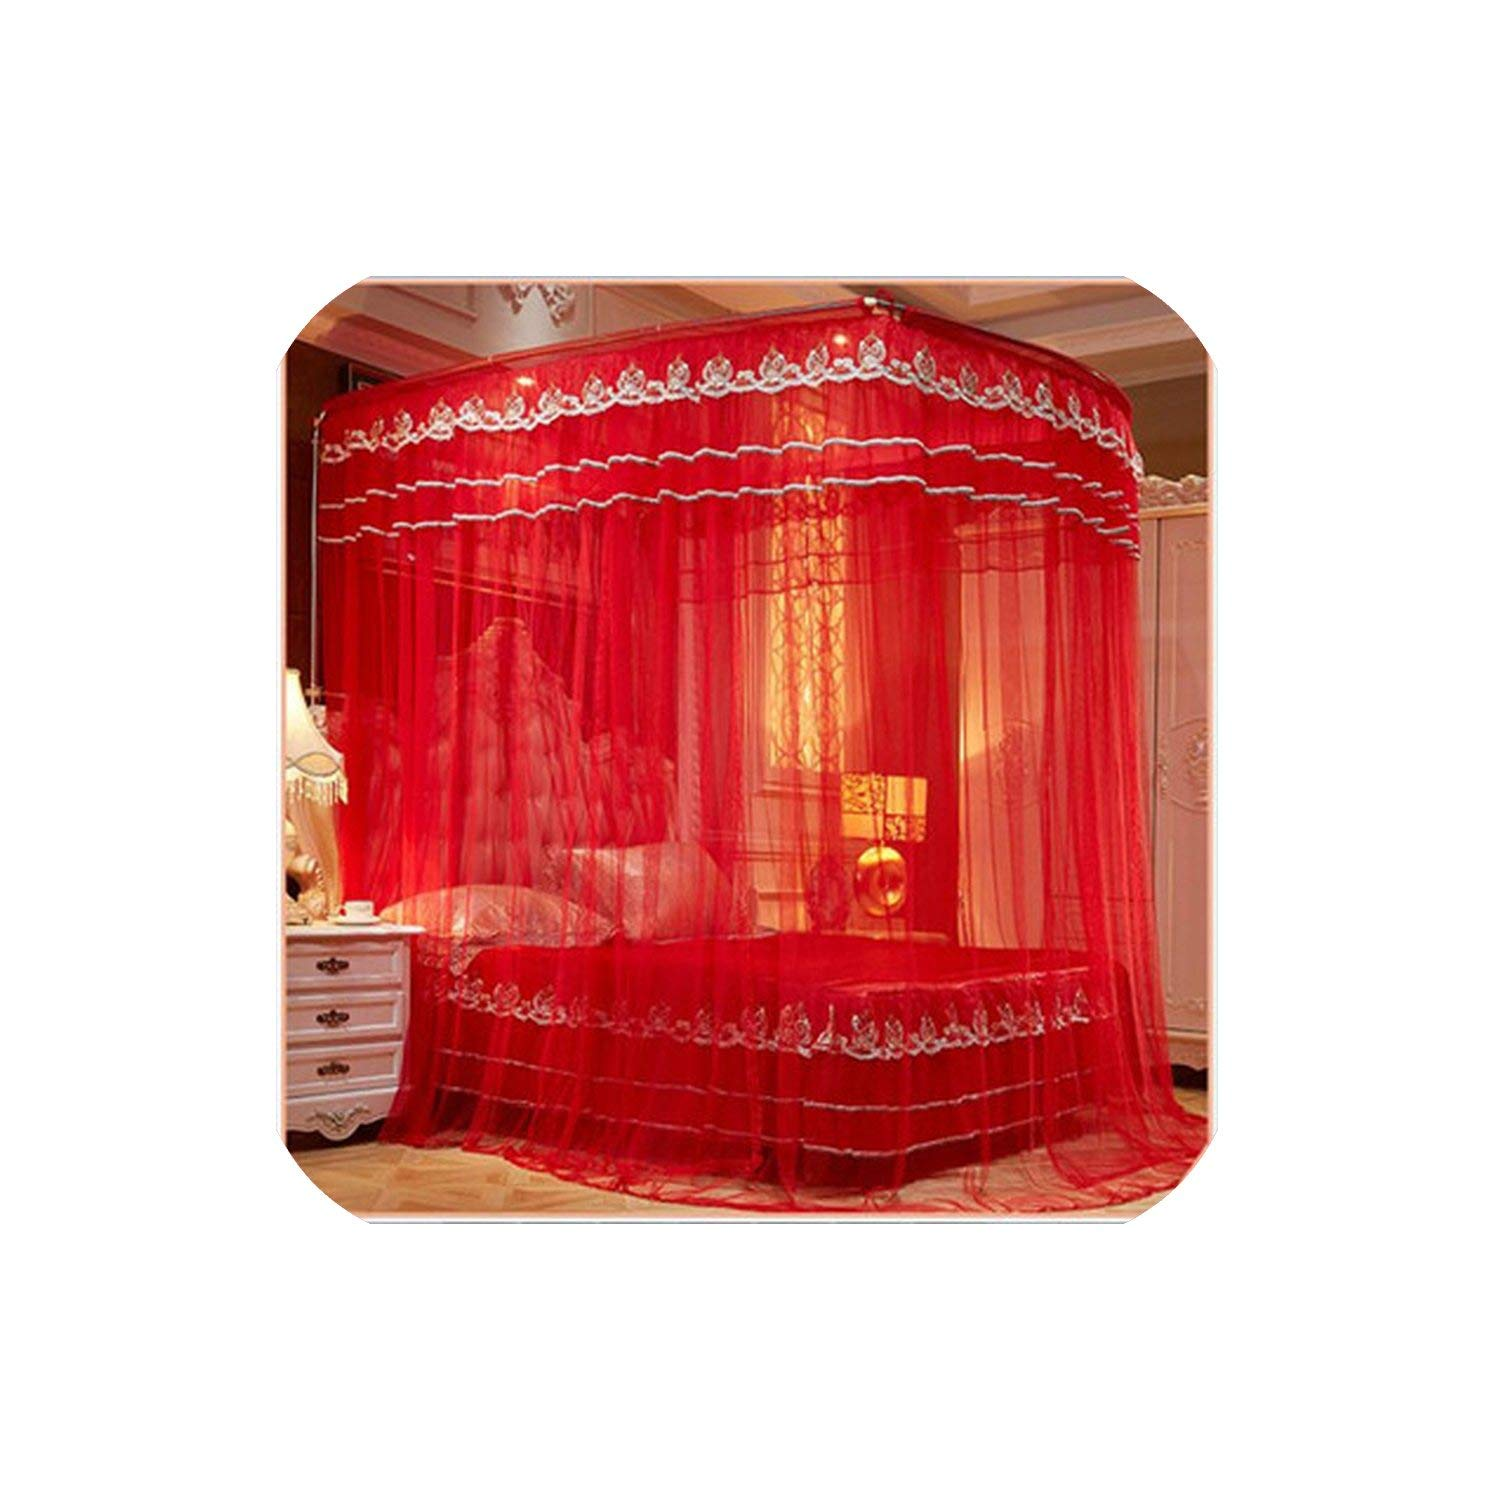 Fishing Rod Retractable Three Door Palace Mosquito Net Floor Standing Anti Mosquito Wedding Nets,Wedding Red Color,1.8Mwx2Mlx2.1Mh